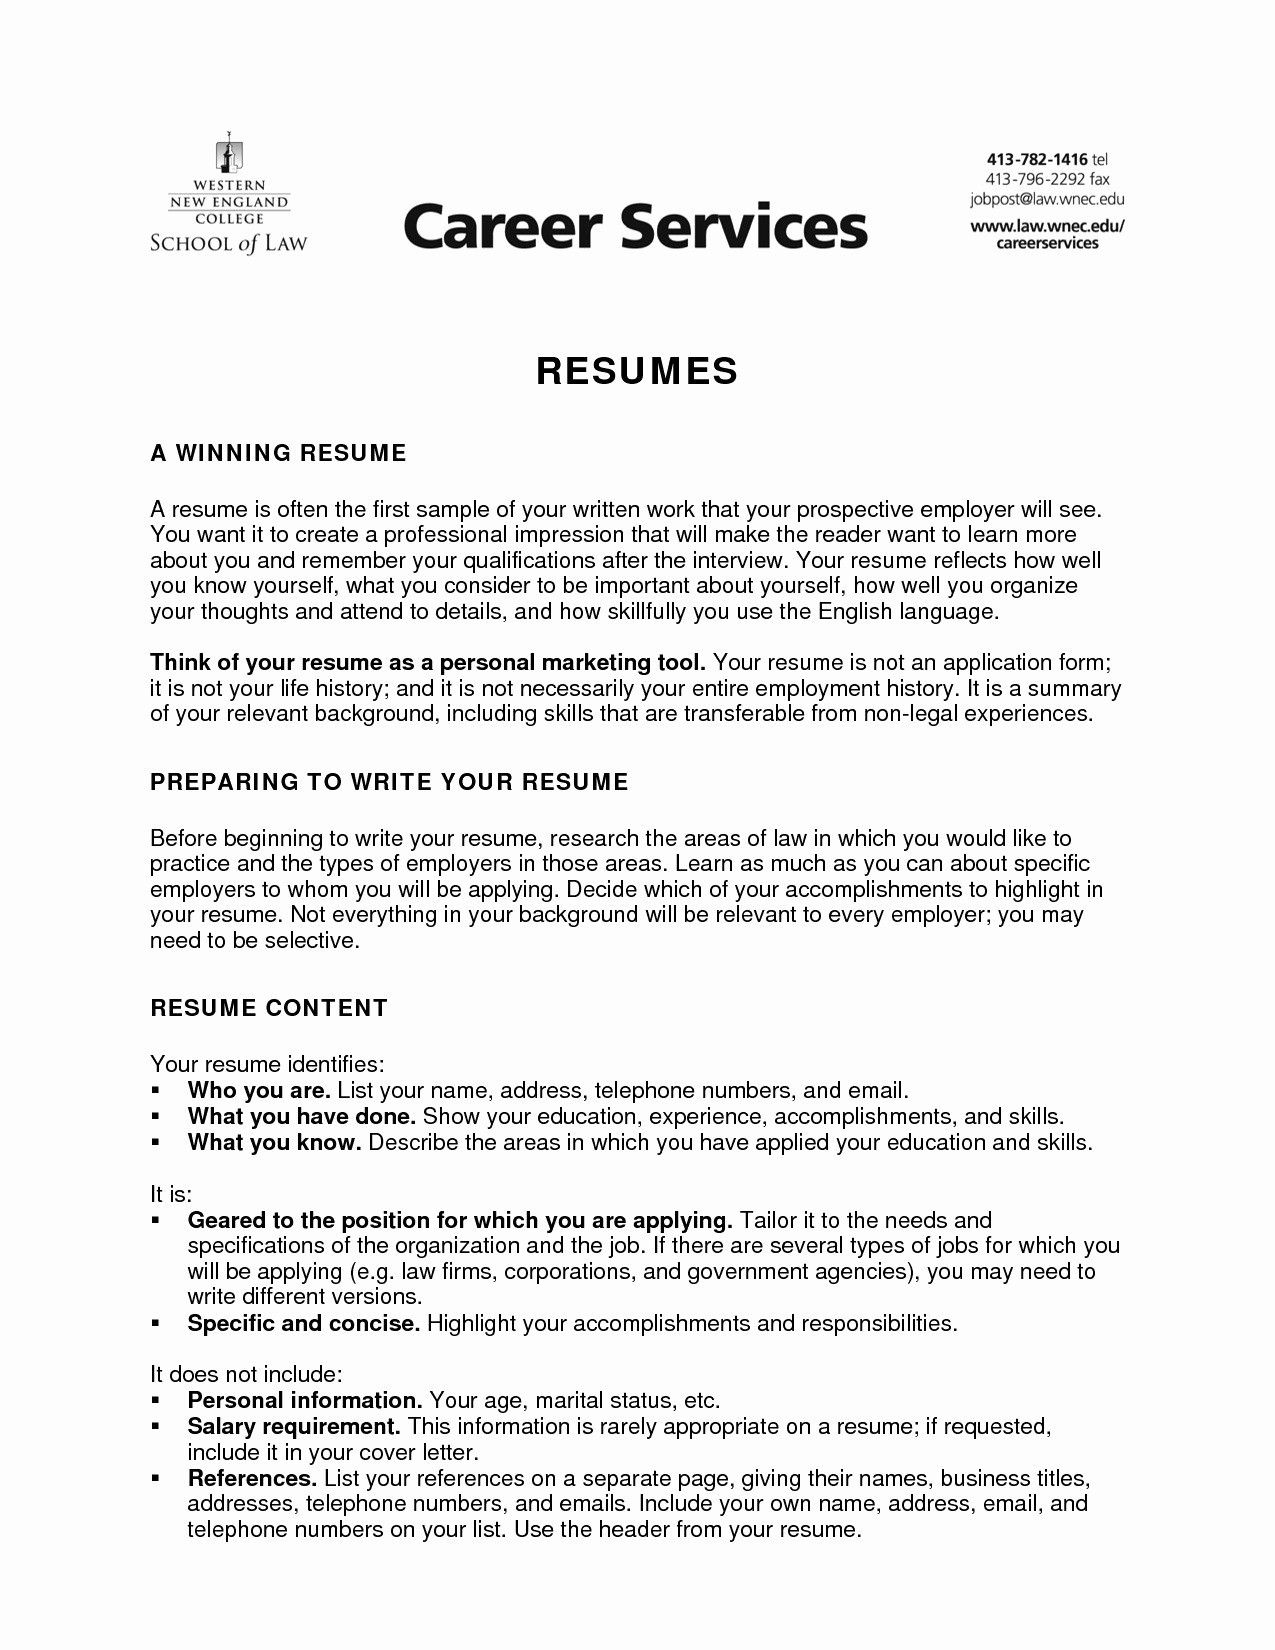 79 Cool Image Of Licensed social Work Resume Examples ...